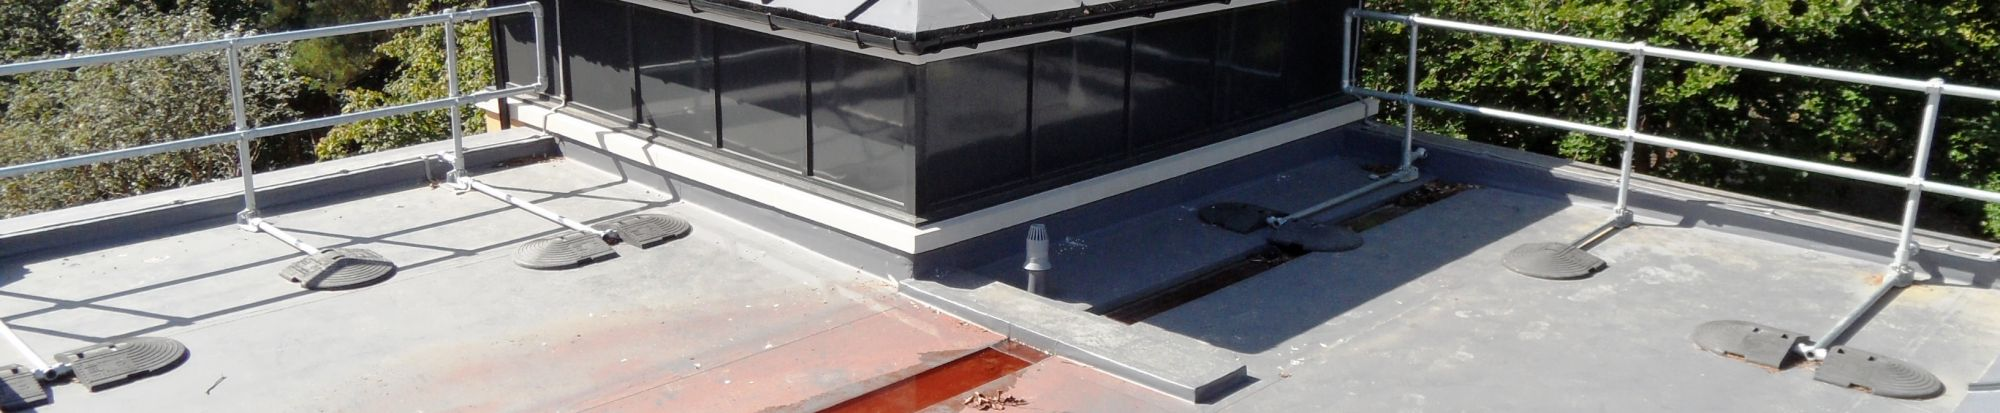 Guardrails & Roof Edge Fall Protection